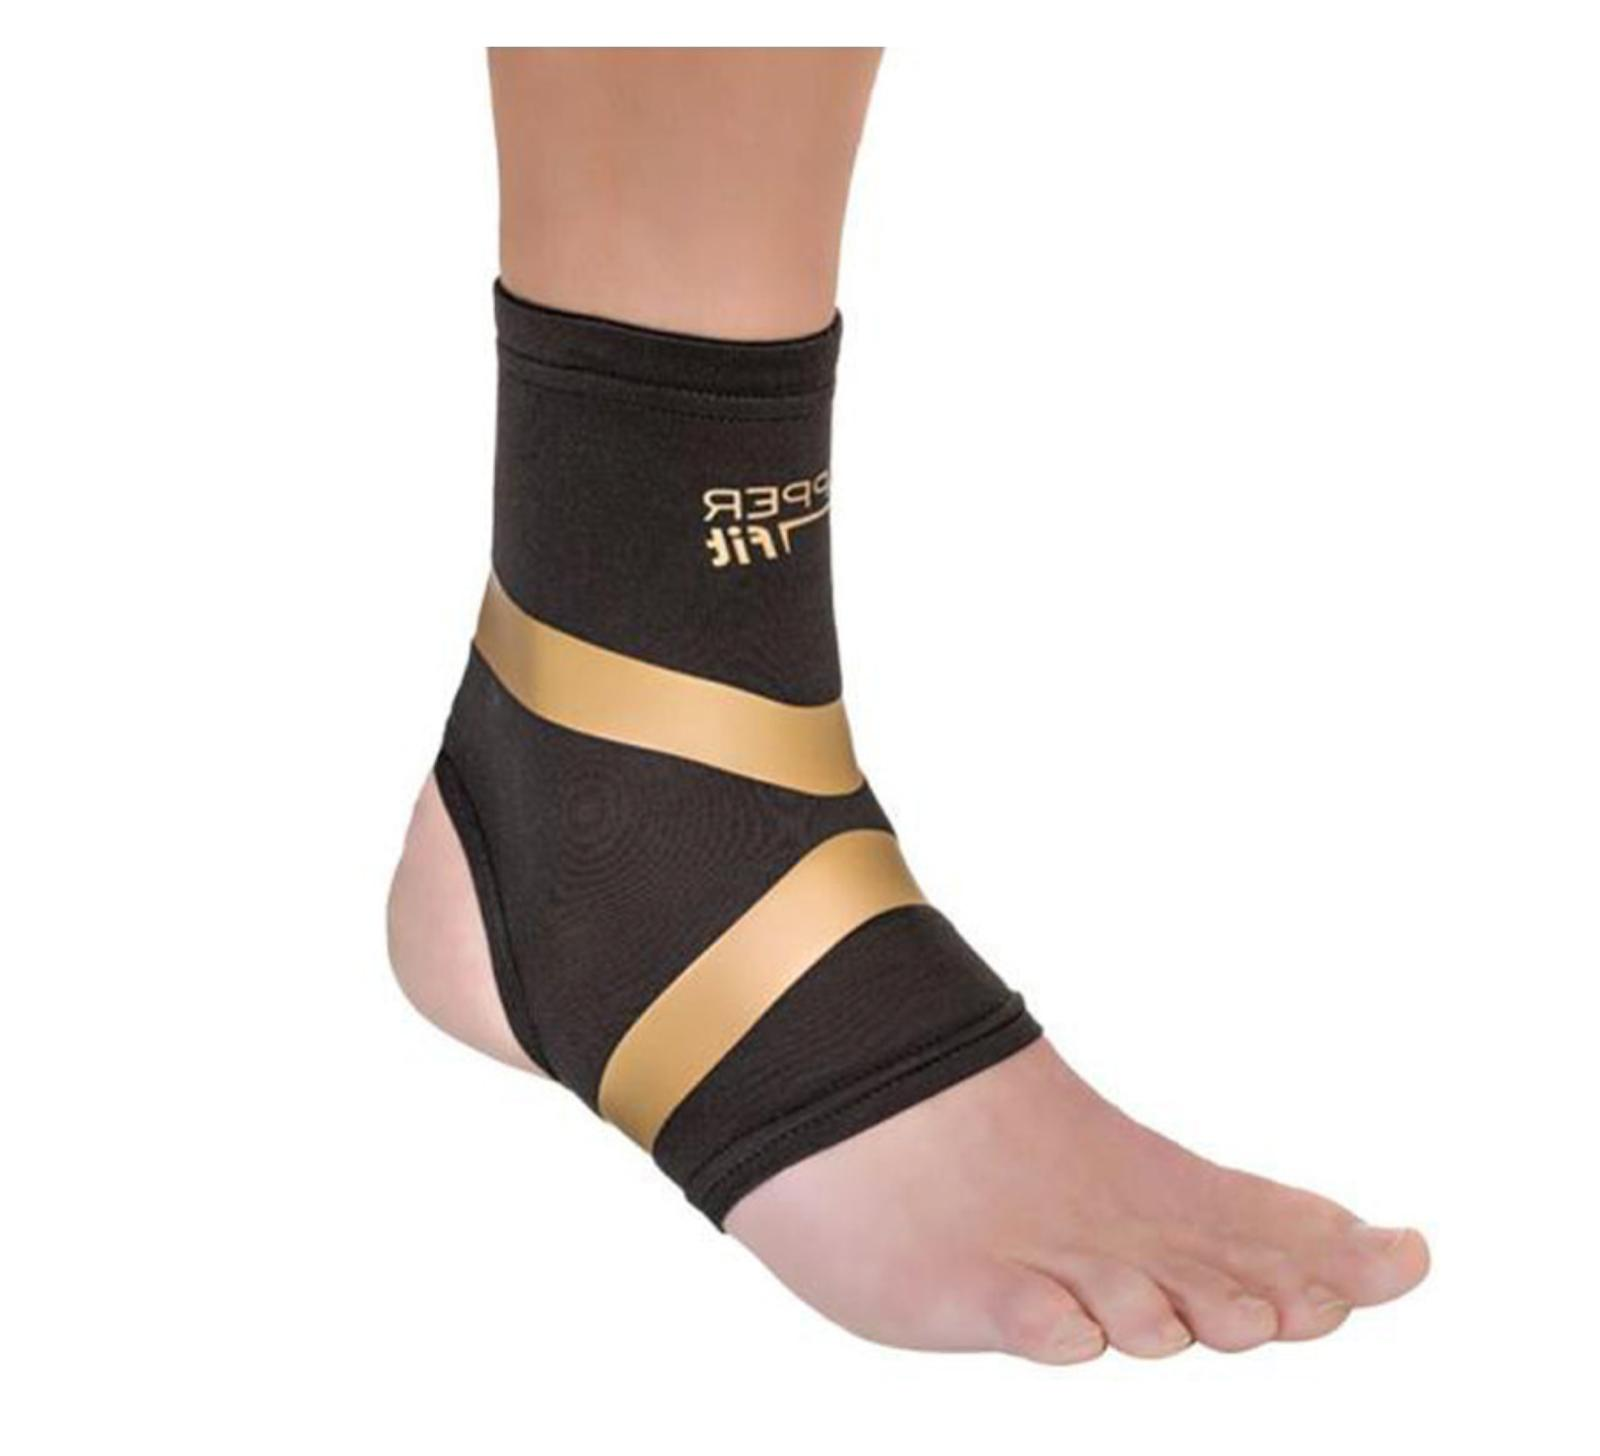 Copper Ankle support Arthritis Relief Motion Brace